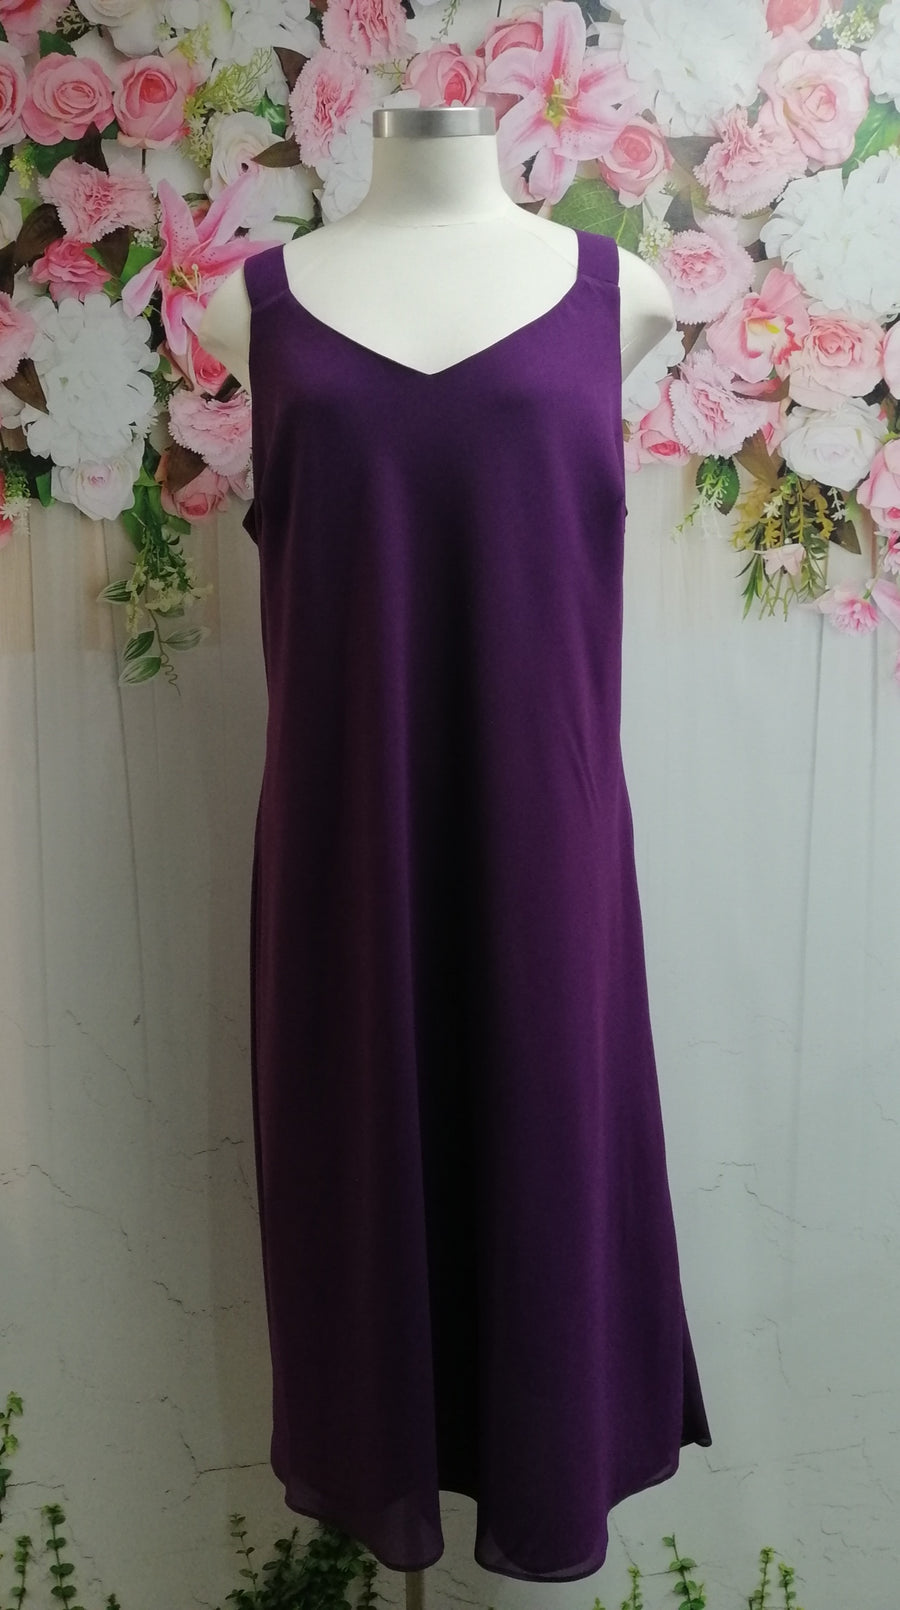 Swish Georgette Dress - Grape - Fashion Focus